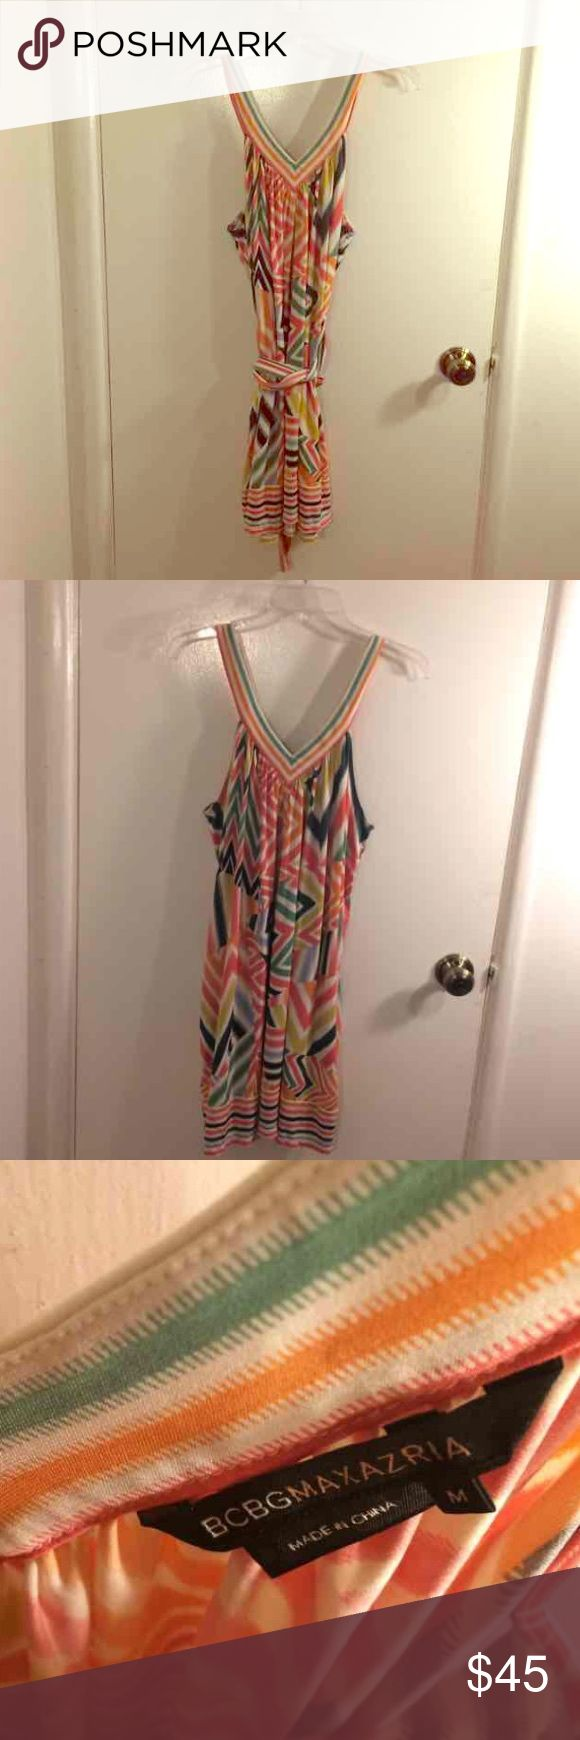 BCBG MAXAZRIA Striped Dress BCBG Maxazria women's size medium sleeveless green, orange, white, pink, and yellow striped v-neck knee length spring dress. Like new condition since it has never been worn. Matching waist tie included. Very on trend because stripes in unusual and new patterns is one of the main trends of spring 2017. Fabric content: 96% polyester 4% spandex. Very stretchy. BCBGMaxAzria Dresses Mini